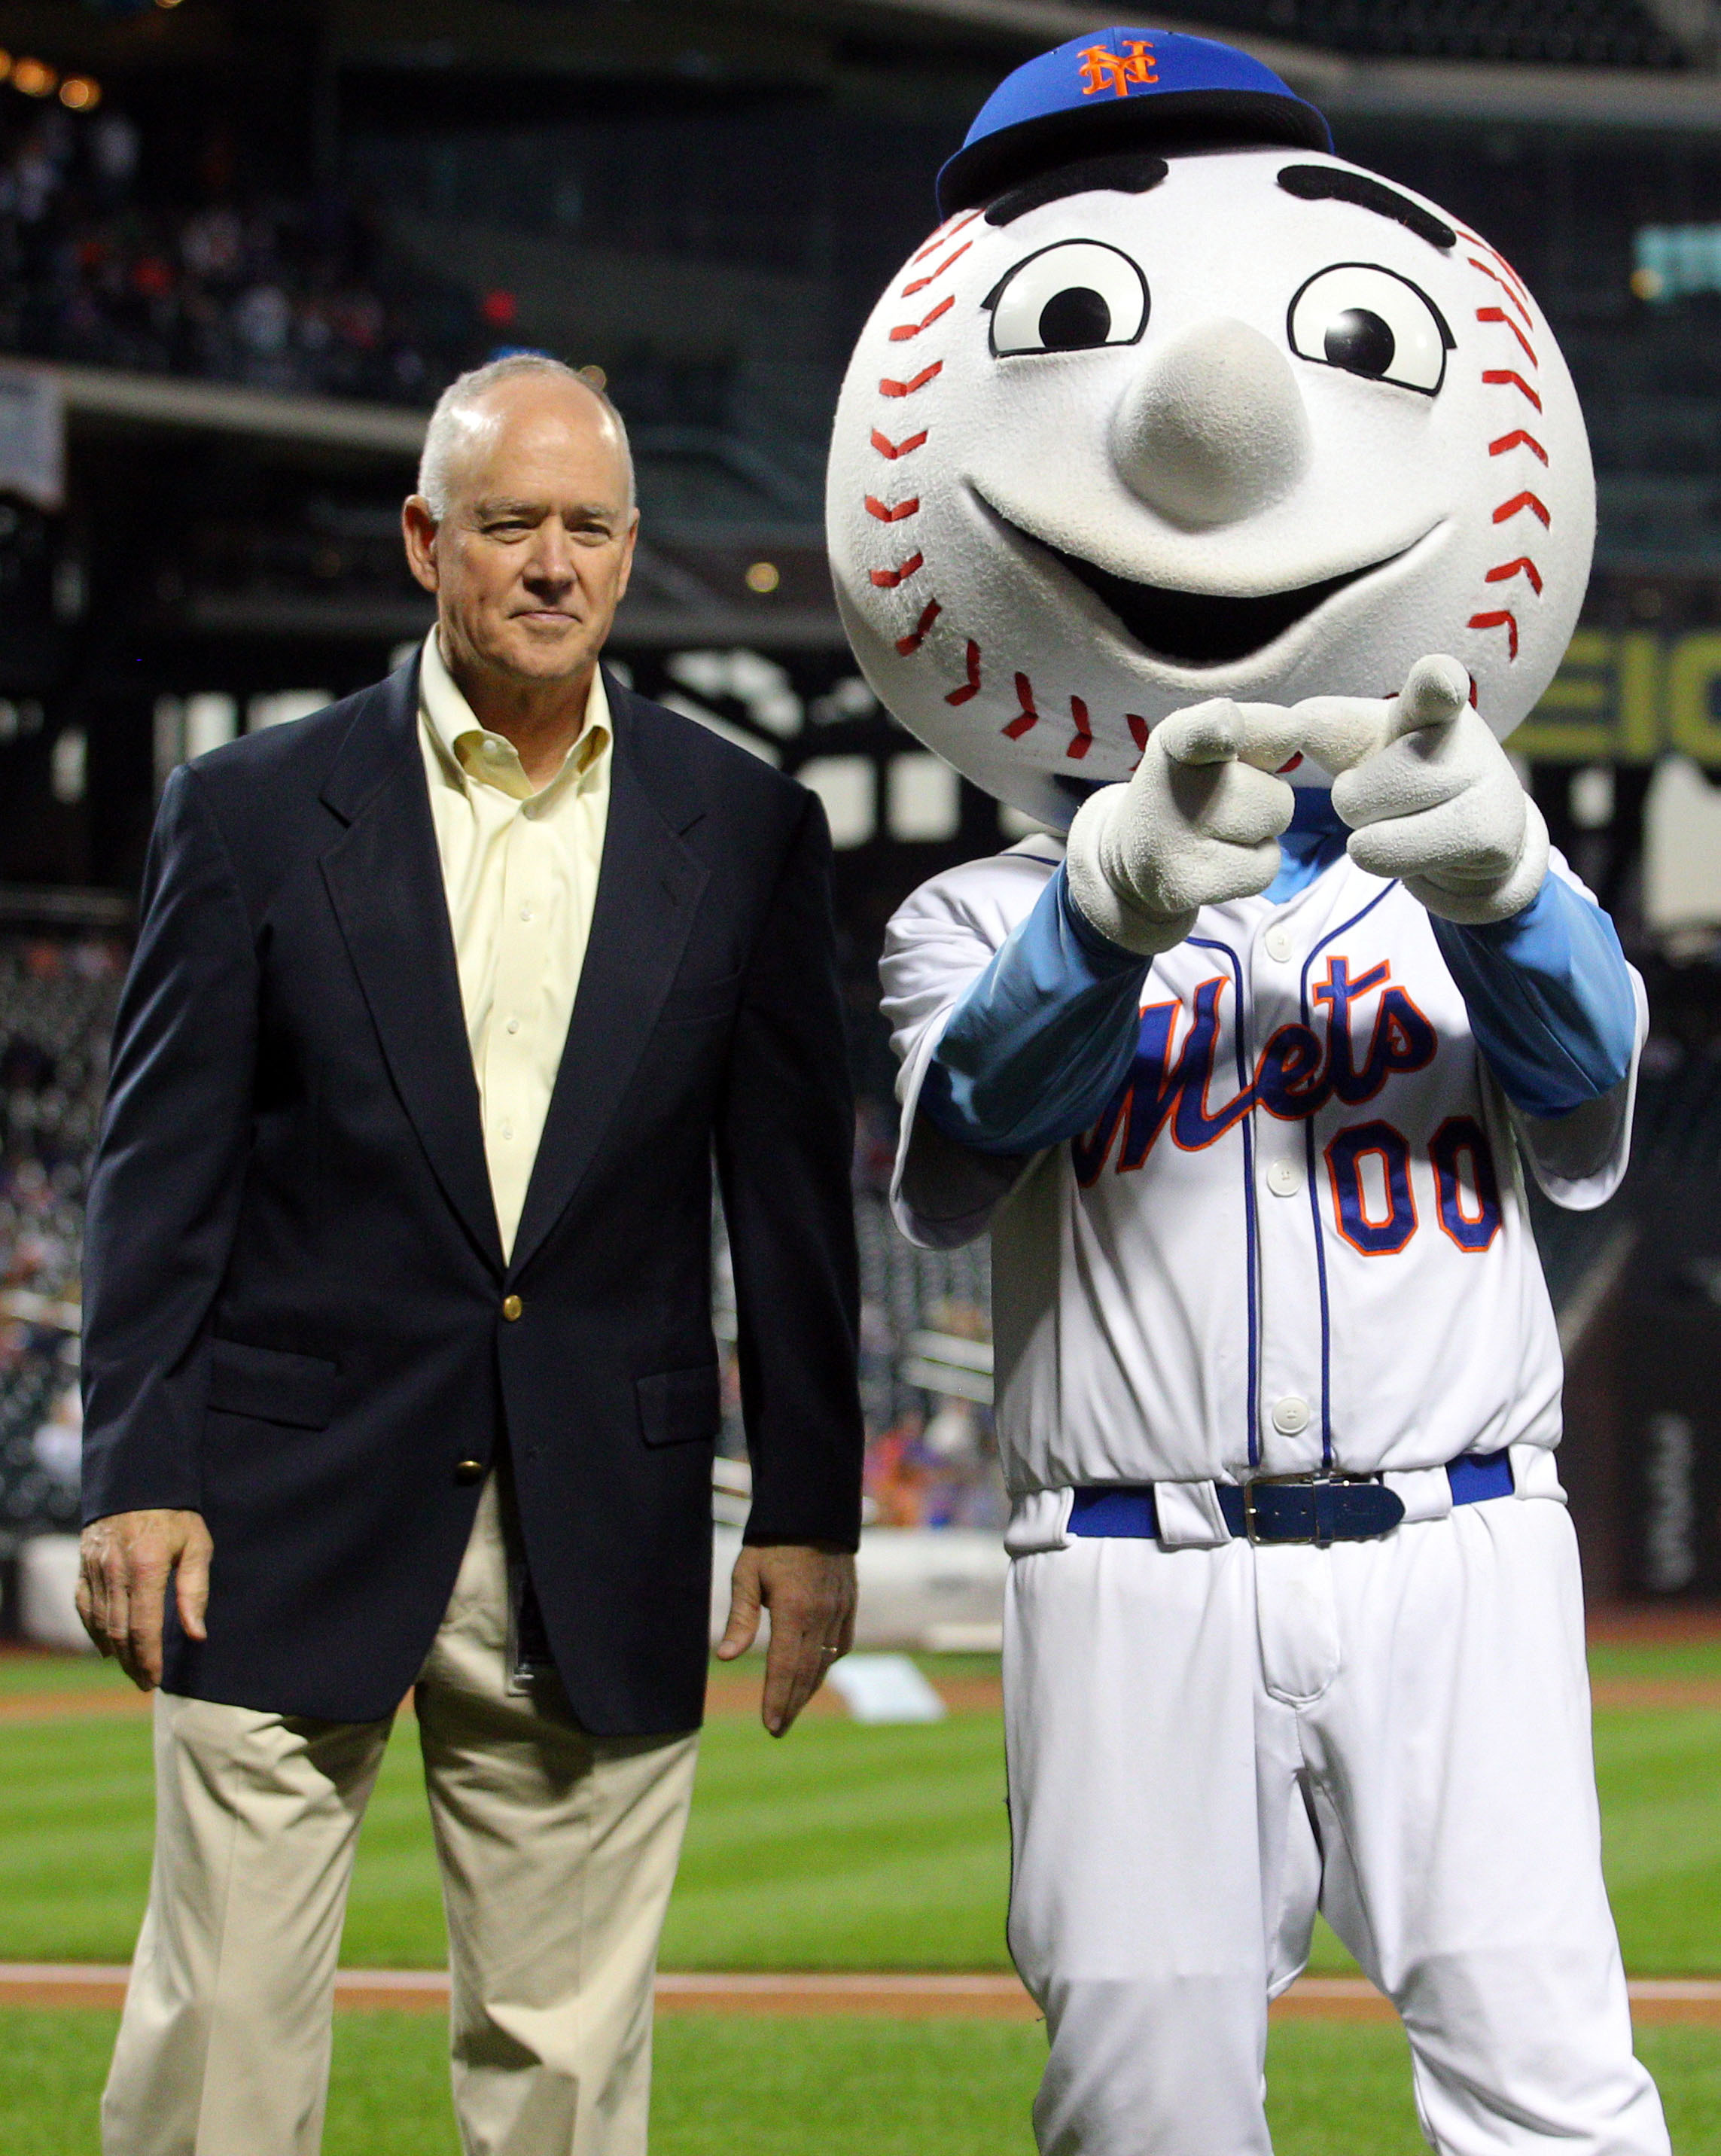 The Mets welcoming committee: Mr. Met and GM Sandy Alderson. (USA TODAY Sports)